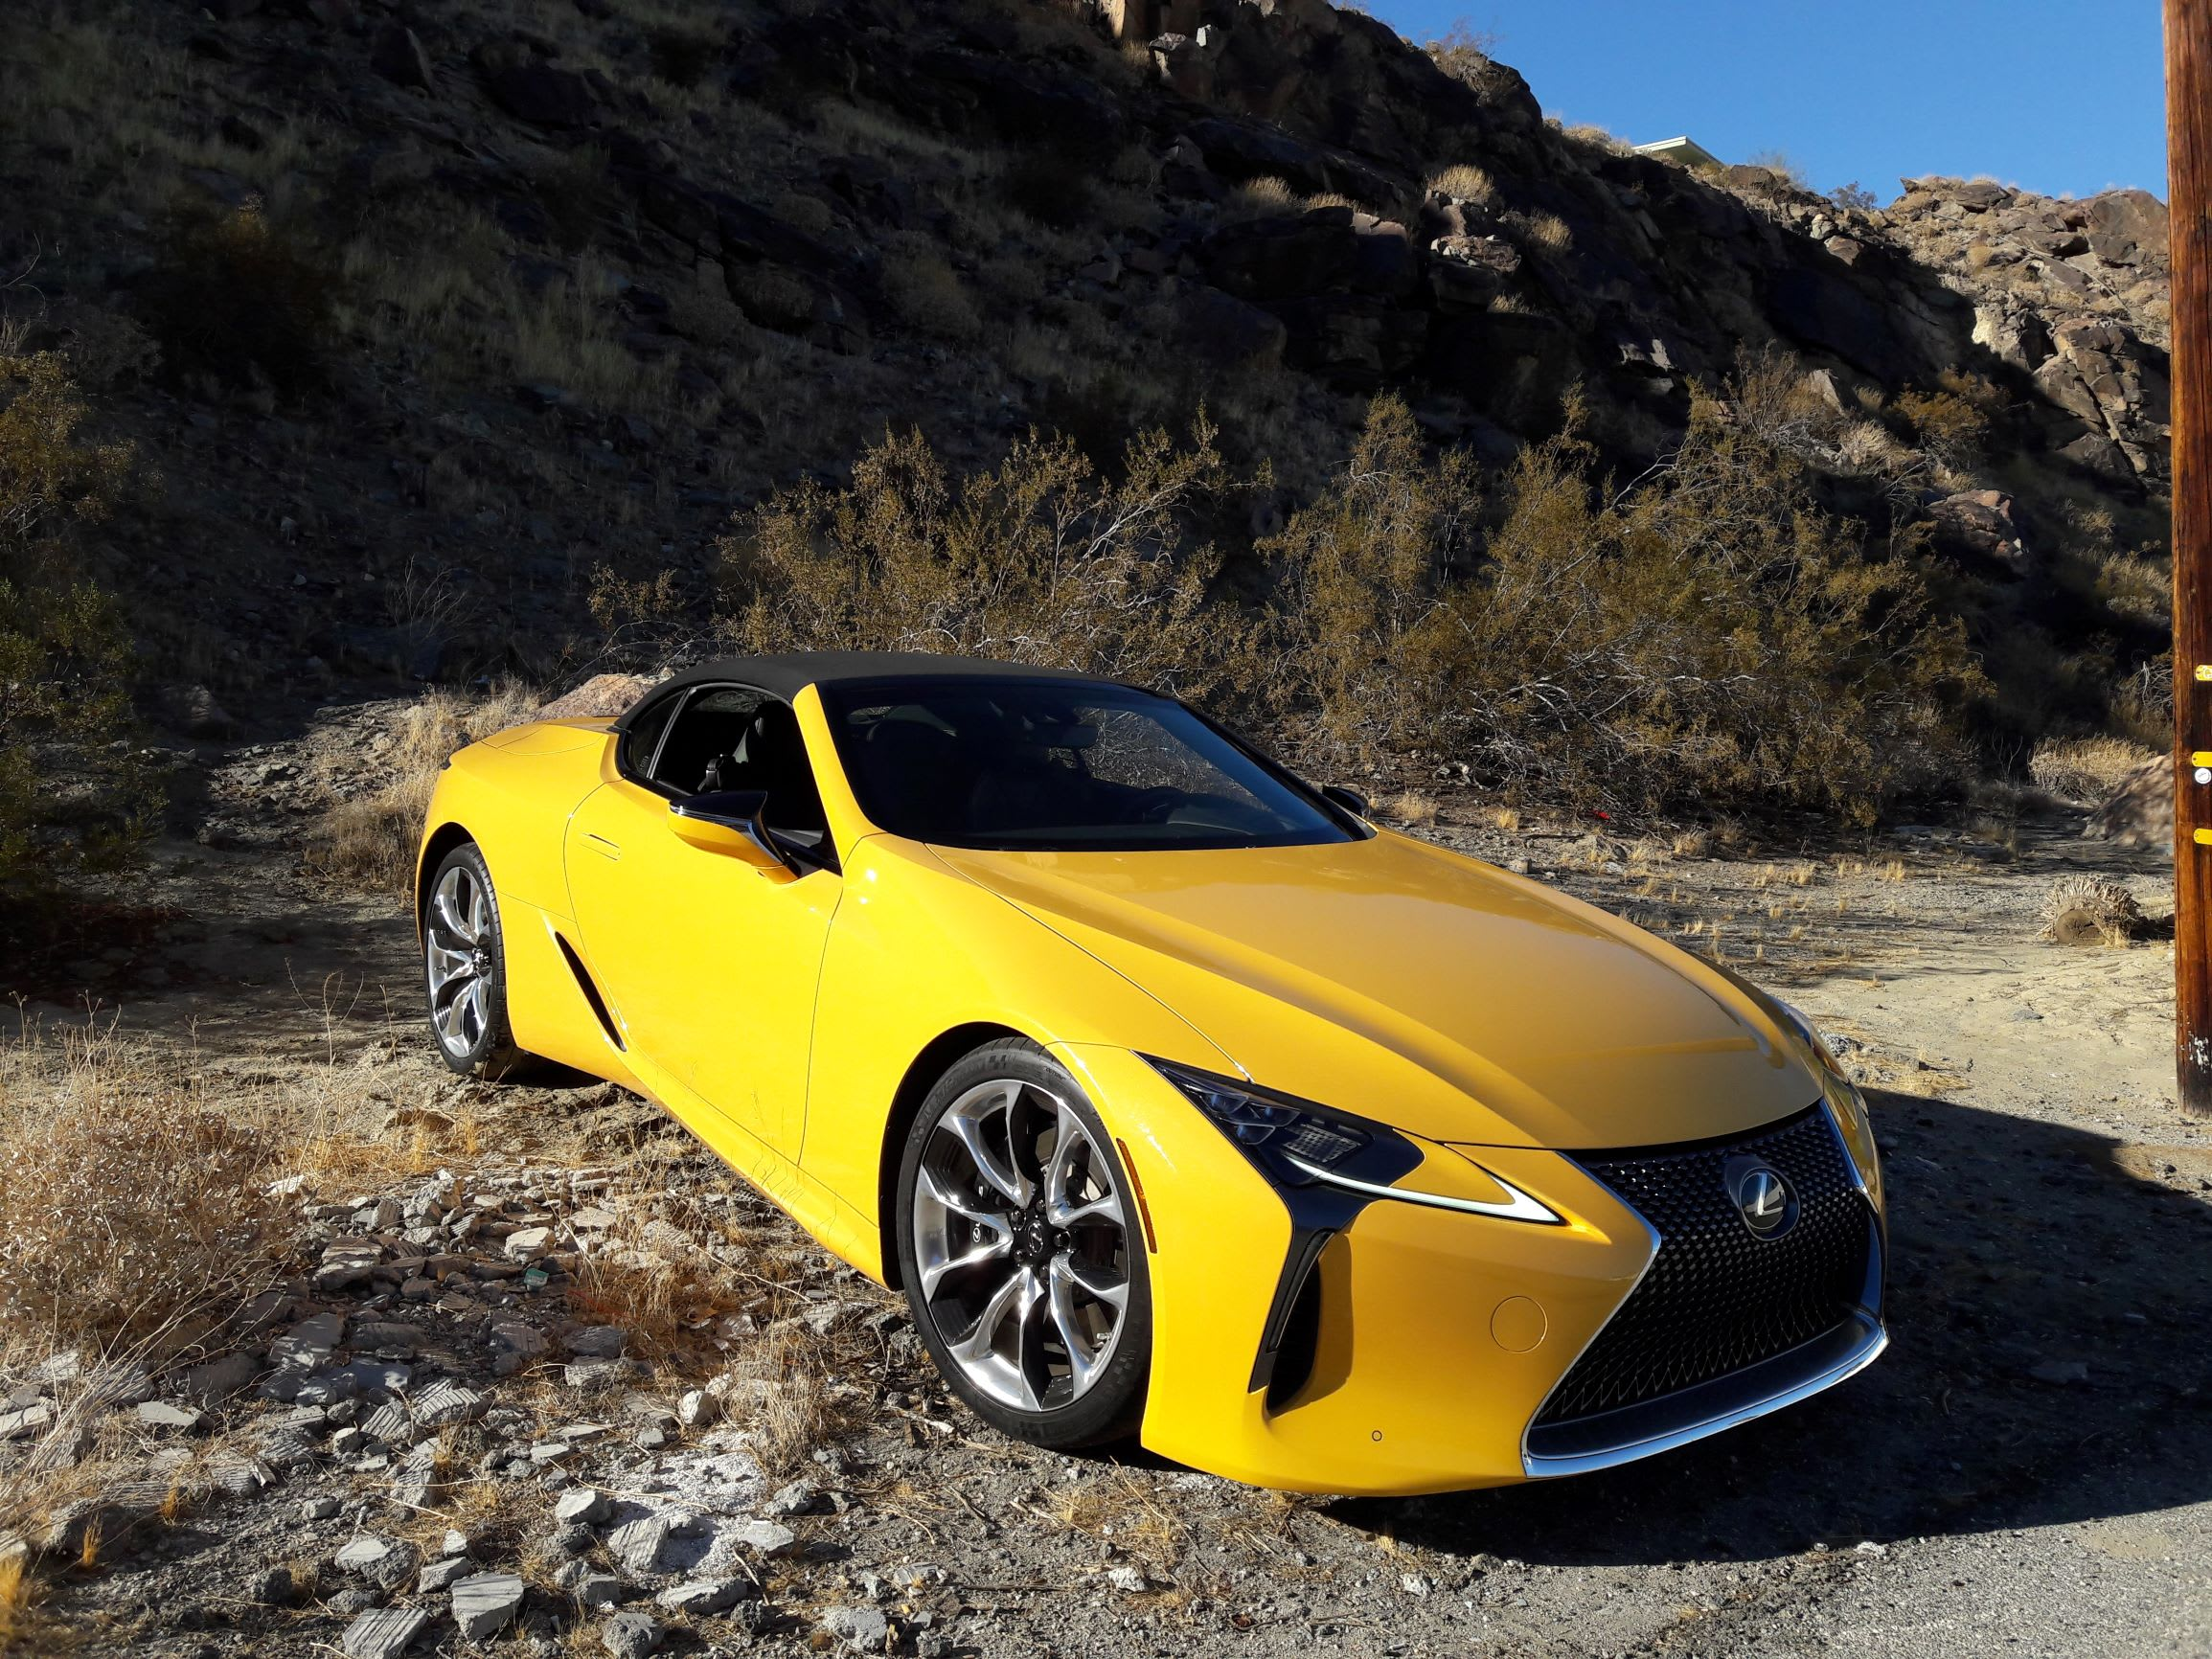 The Lexus LC500 looks sharp from any angle.